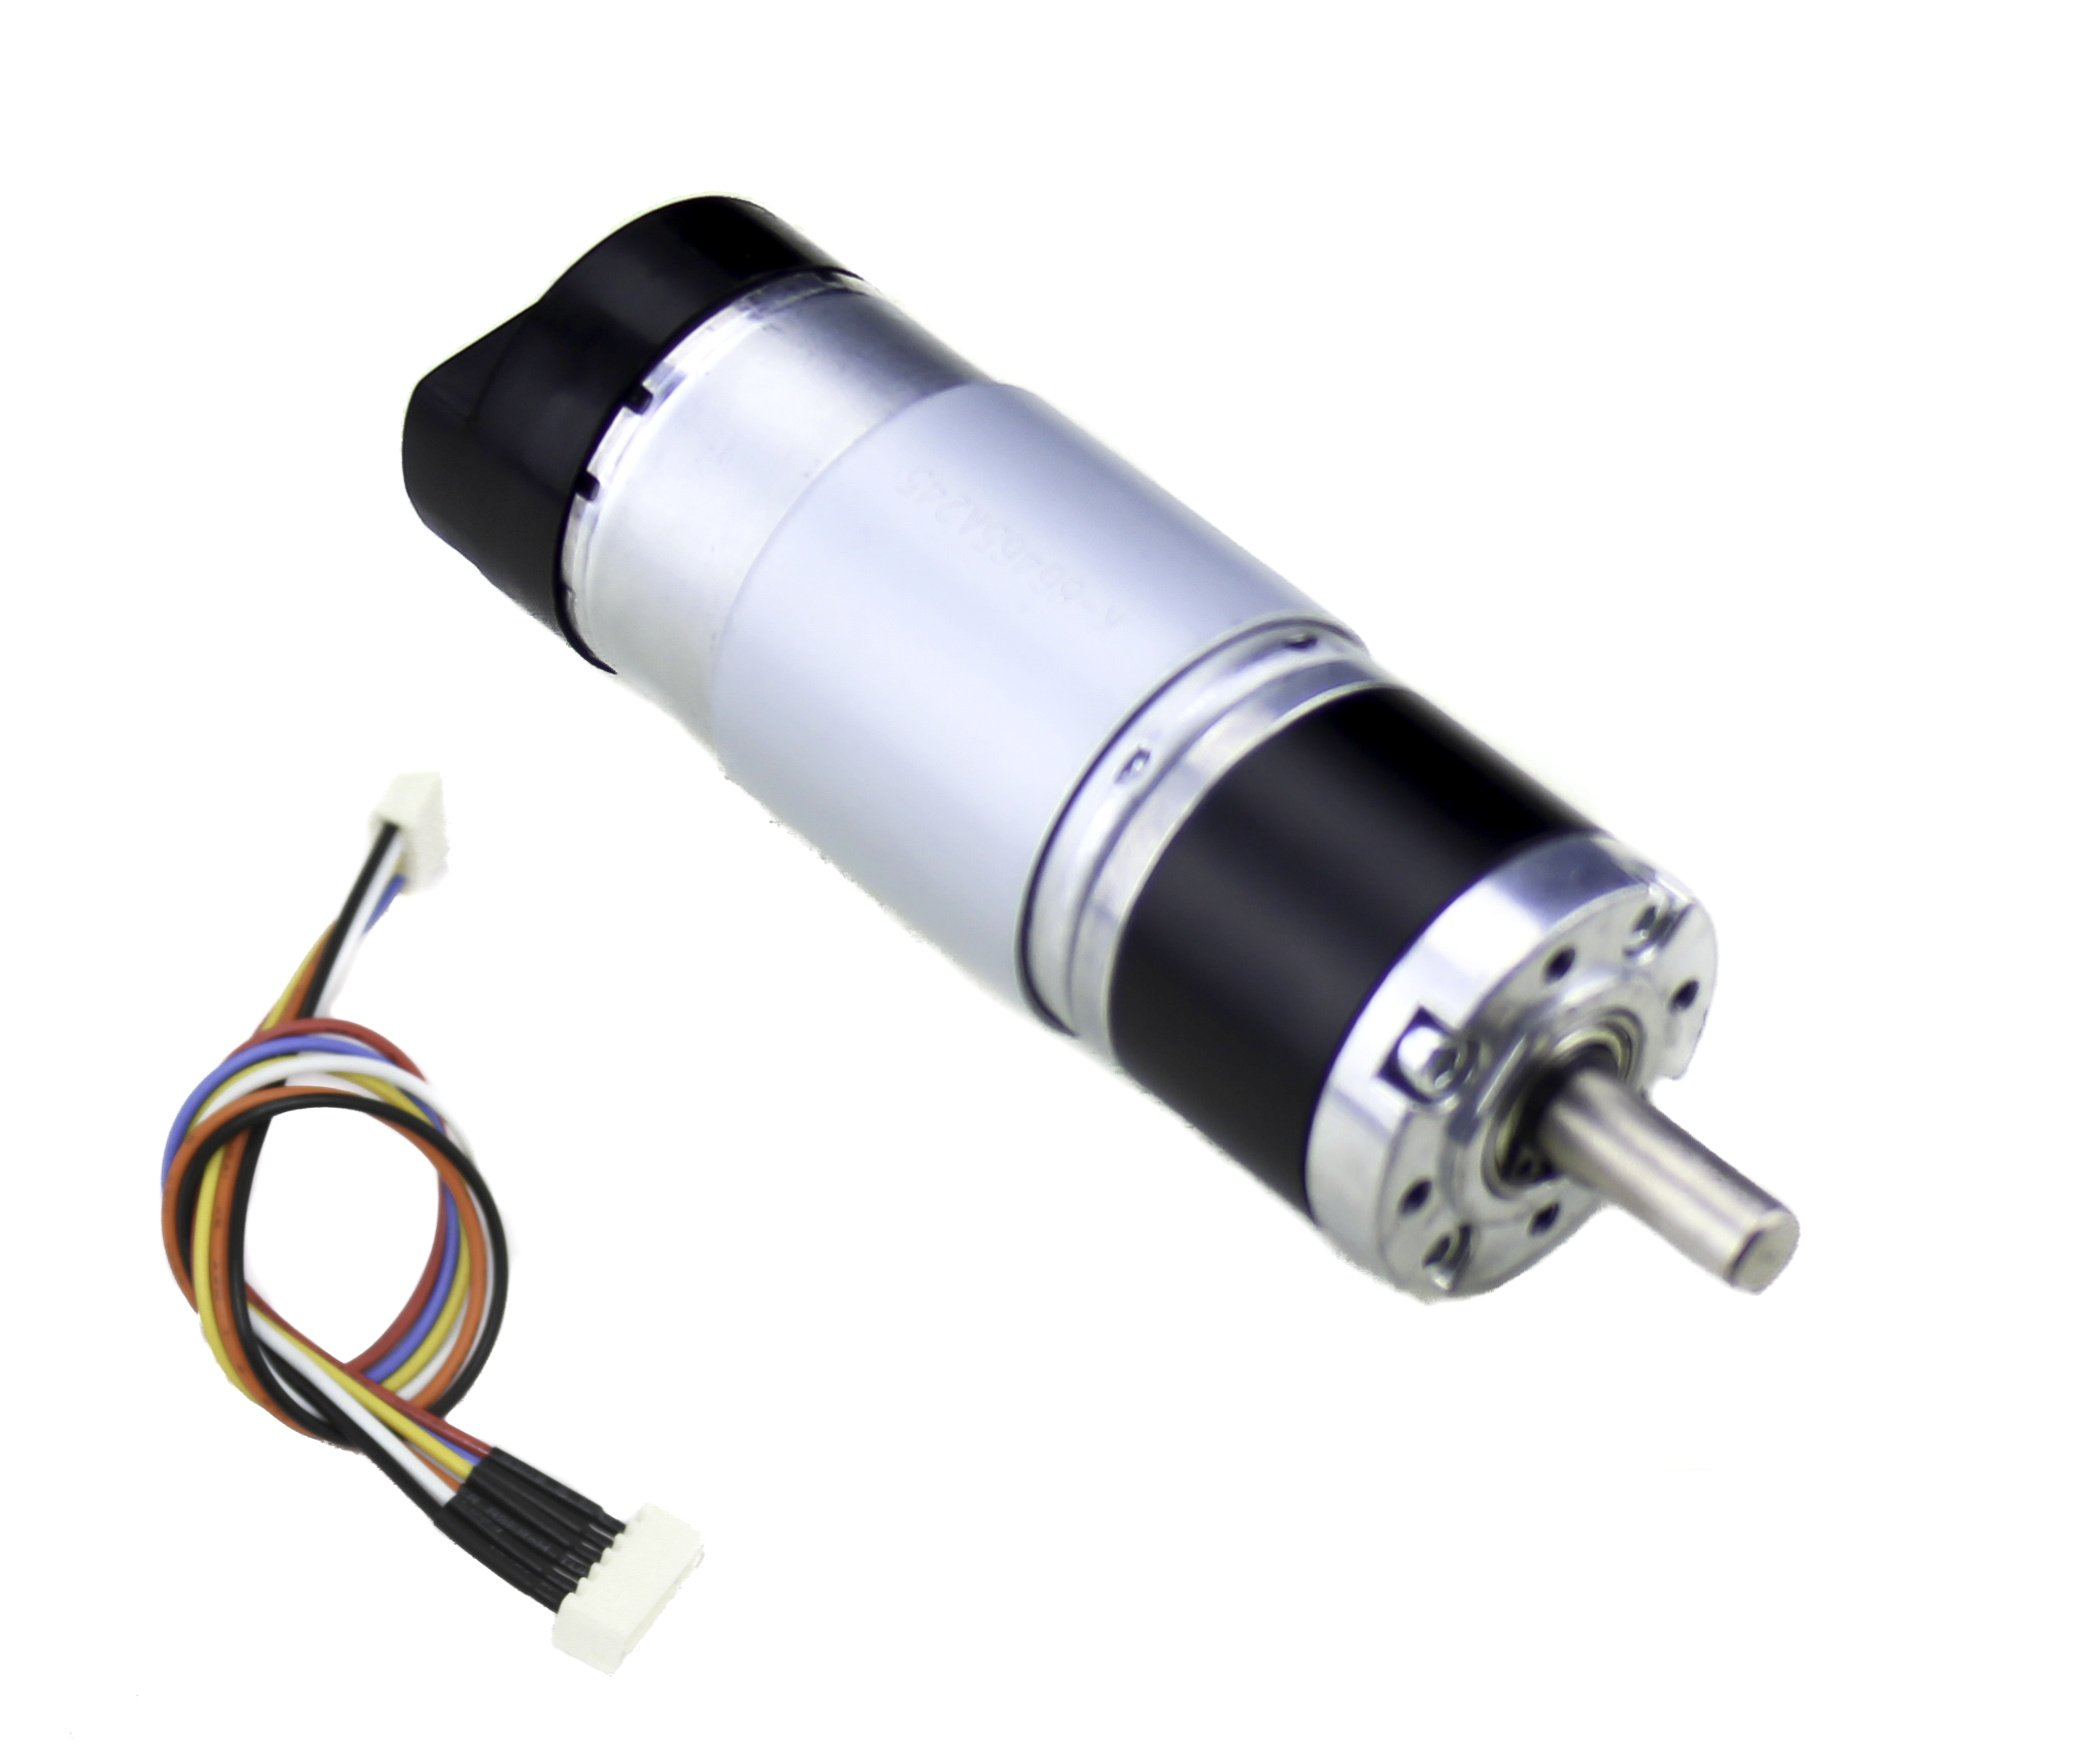 Hd Planetary Dc Geared Motor 438 Rpm 295n Cm 12v With Encoder 12 Volt Reversible Wiring Diagram Hover To Zoom